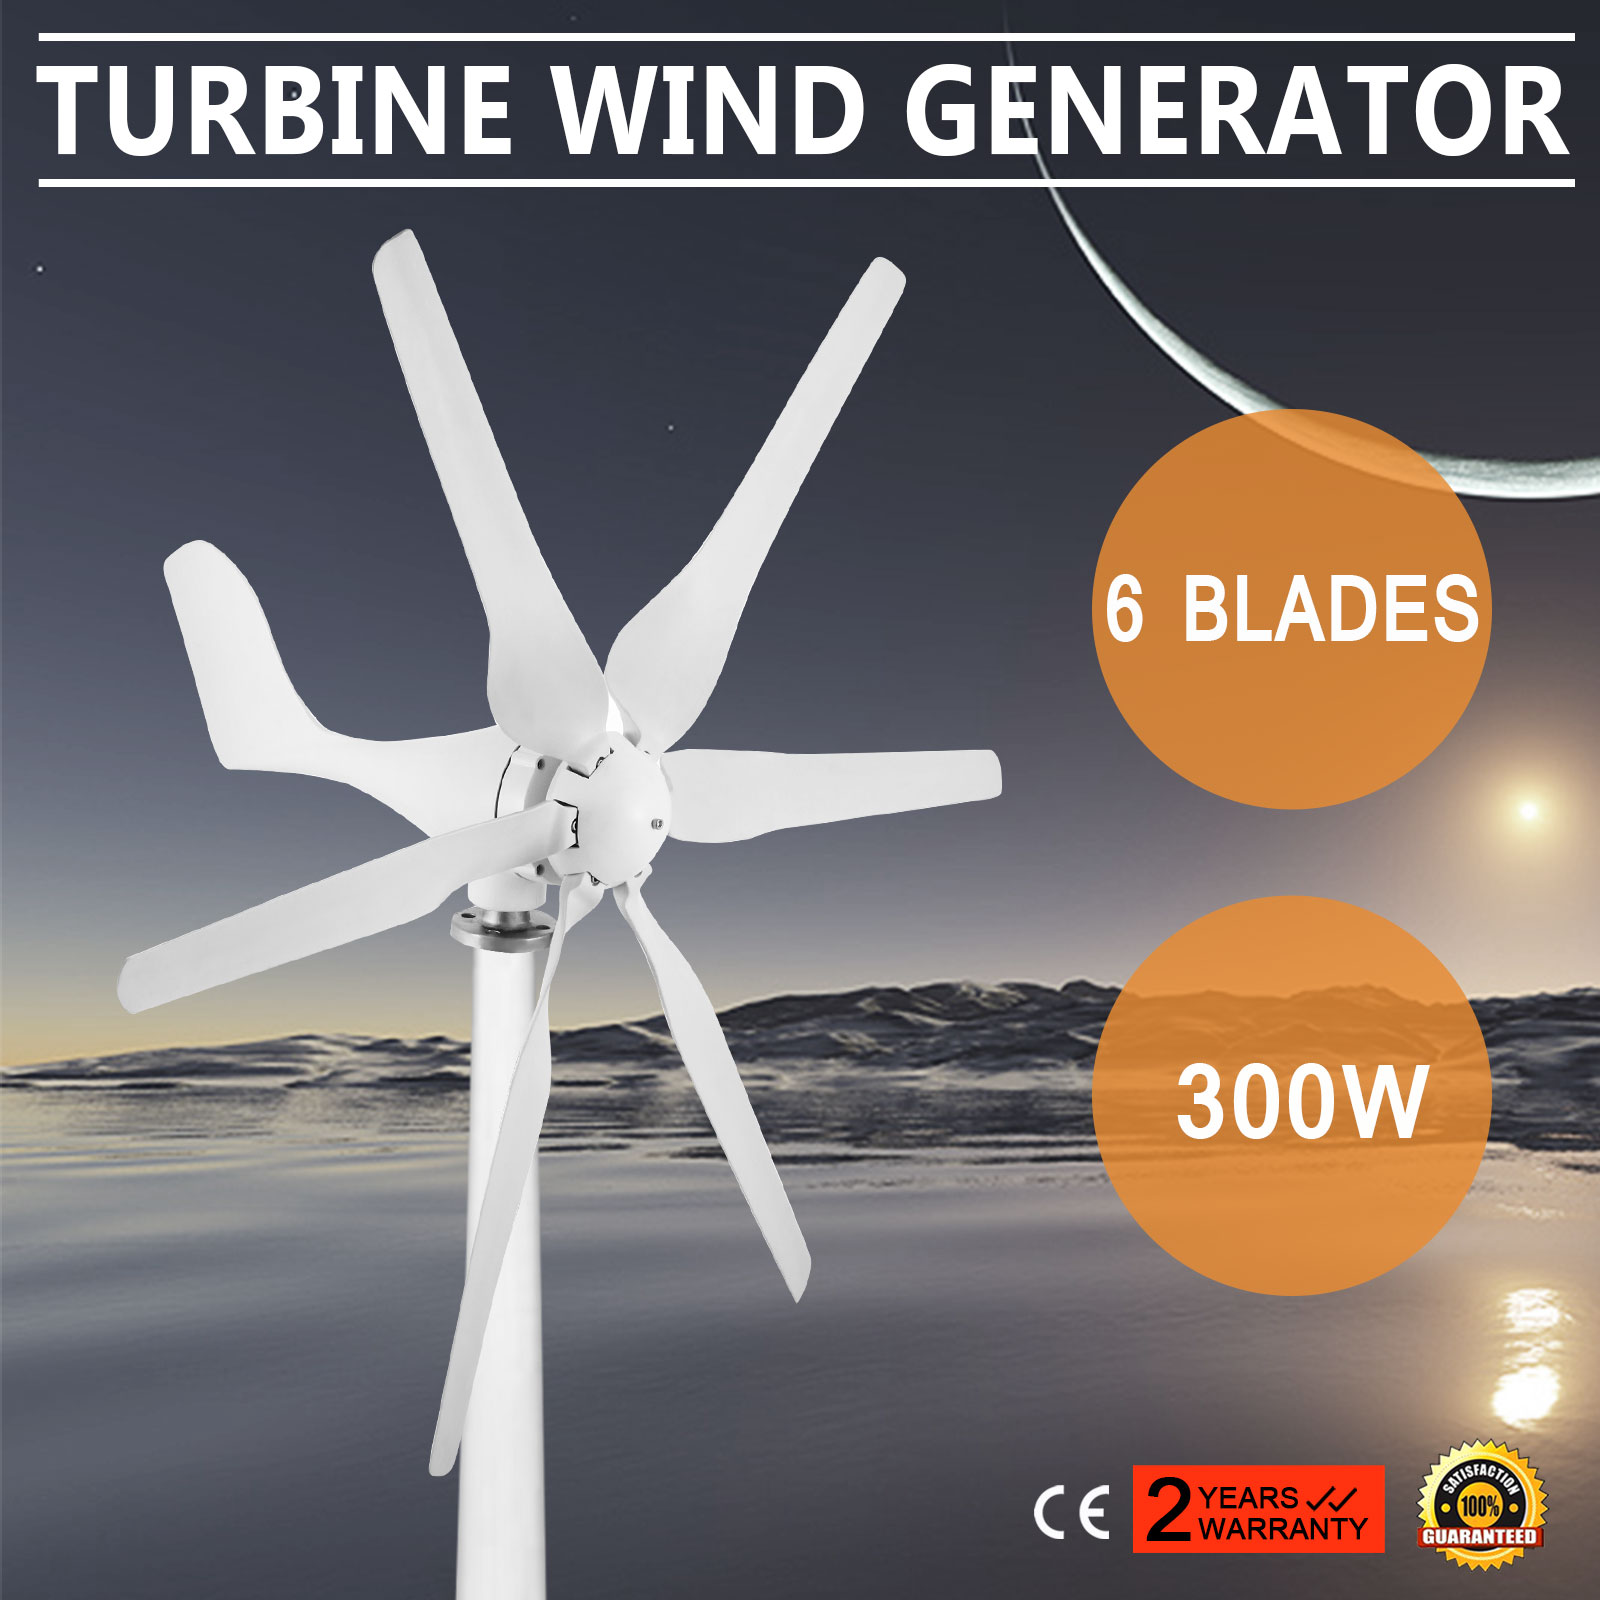 windenergieanlagen zum selber bauen ratgeber technik wind turbine generator kit ebay. Black Bedroom Furniture Sets. Home Design Ideas